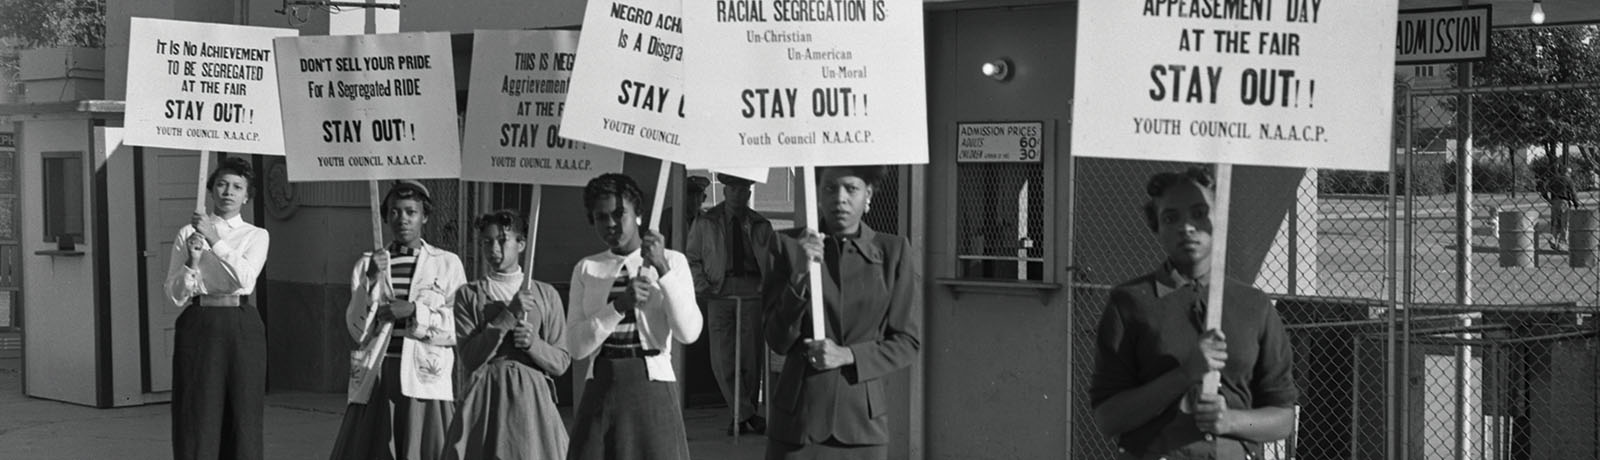 Civil Rights and Social Justice